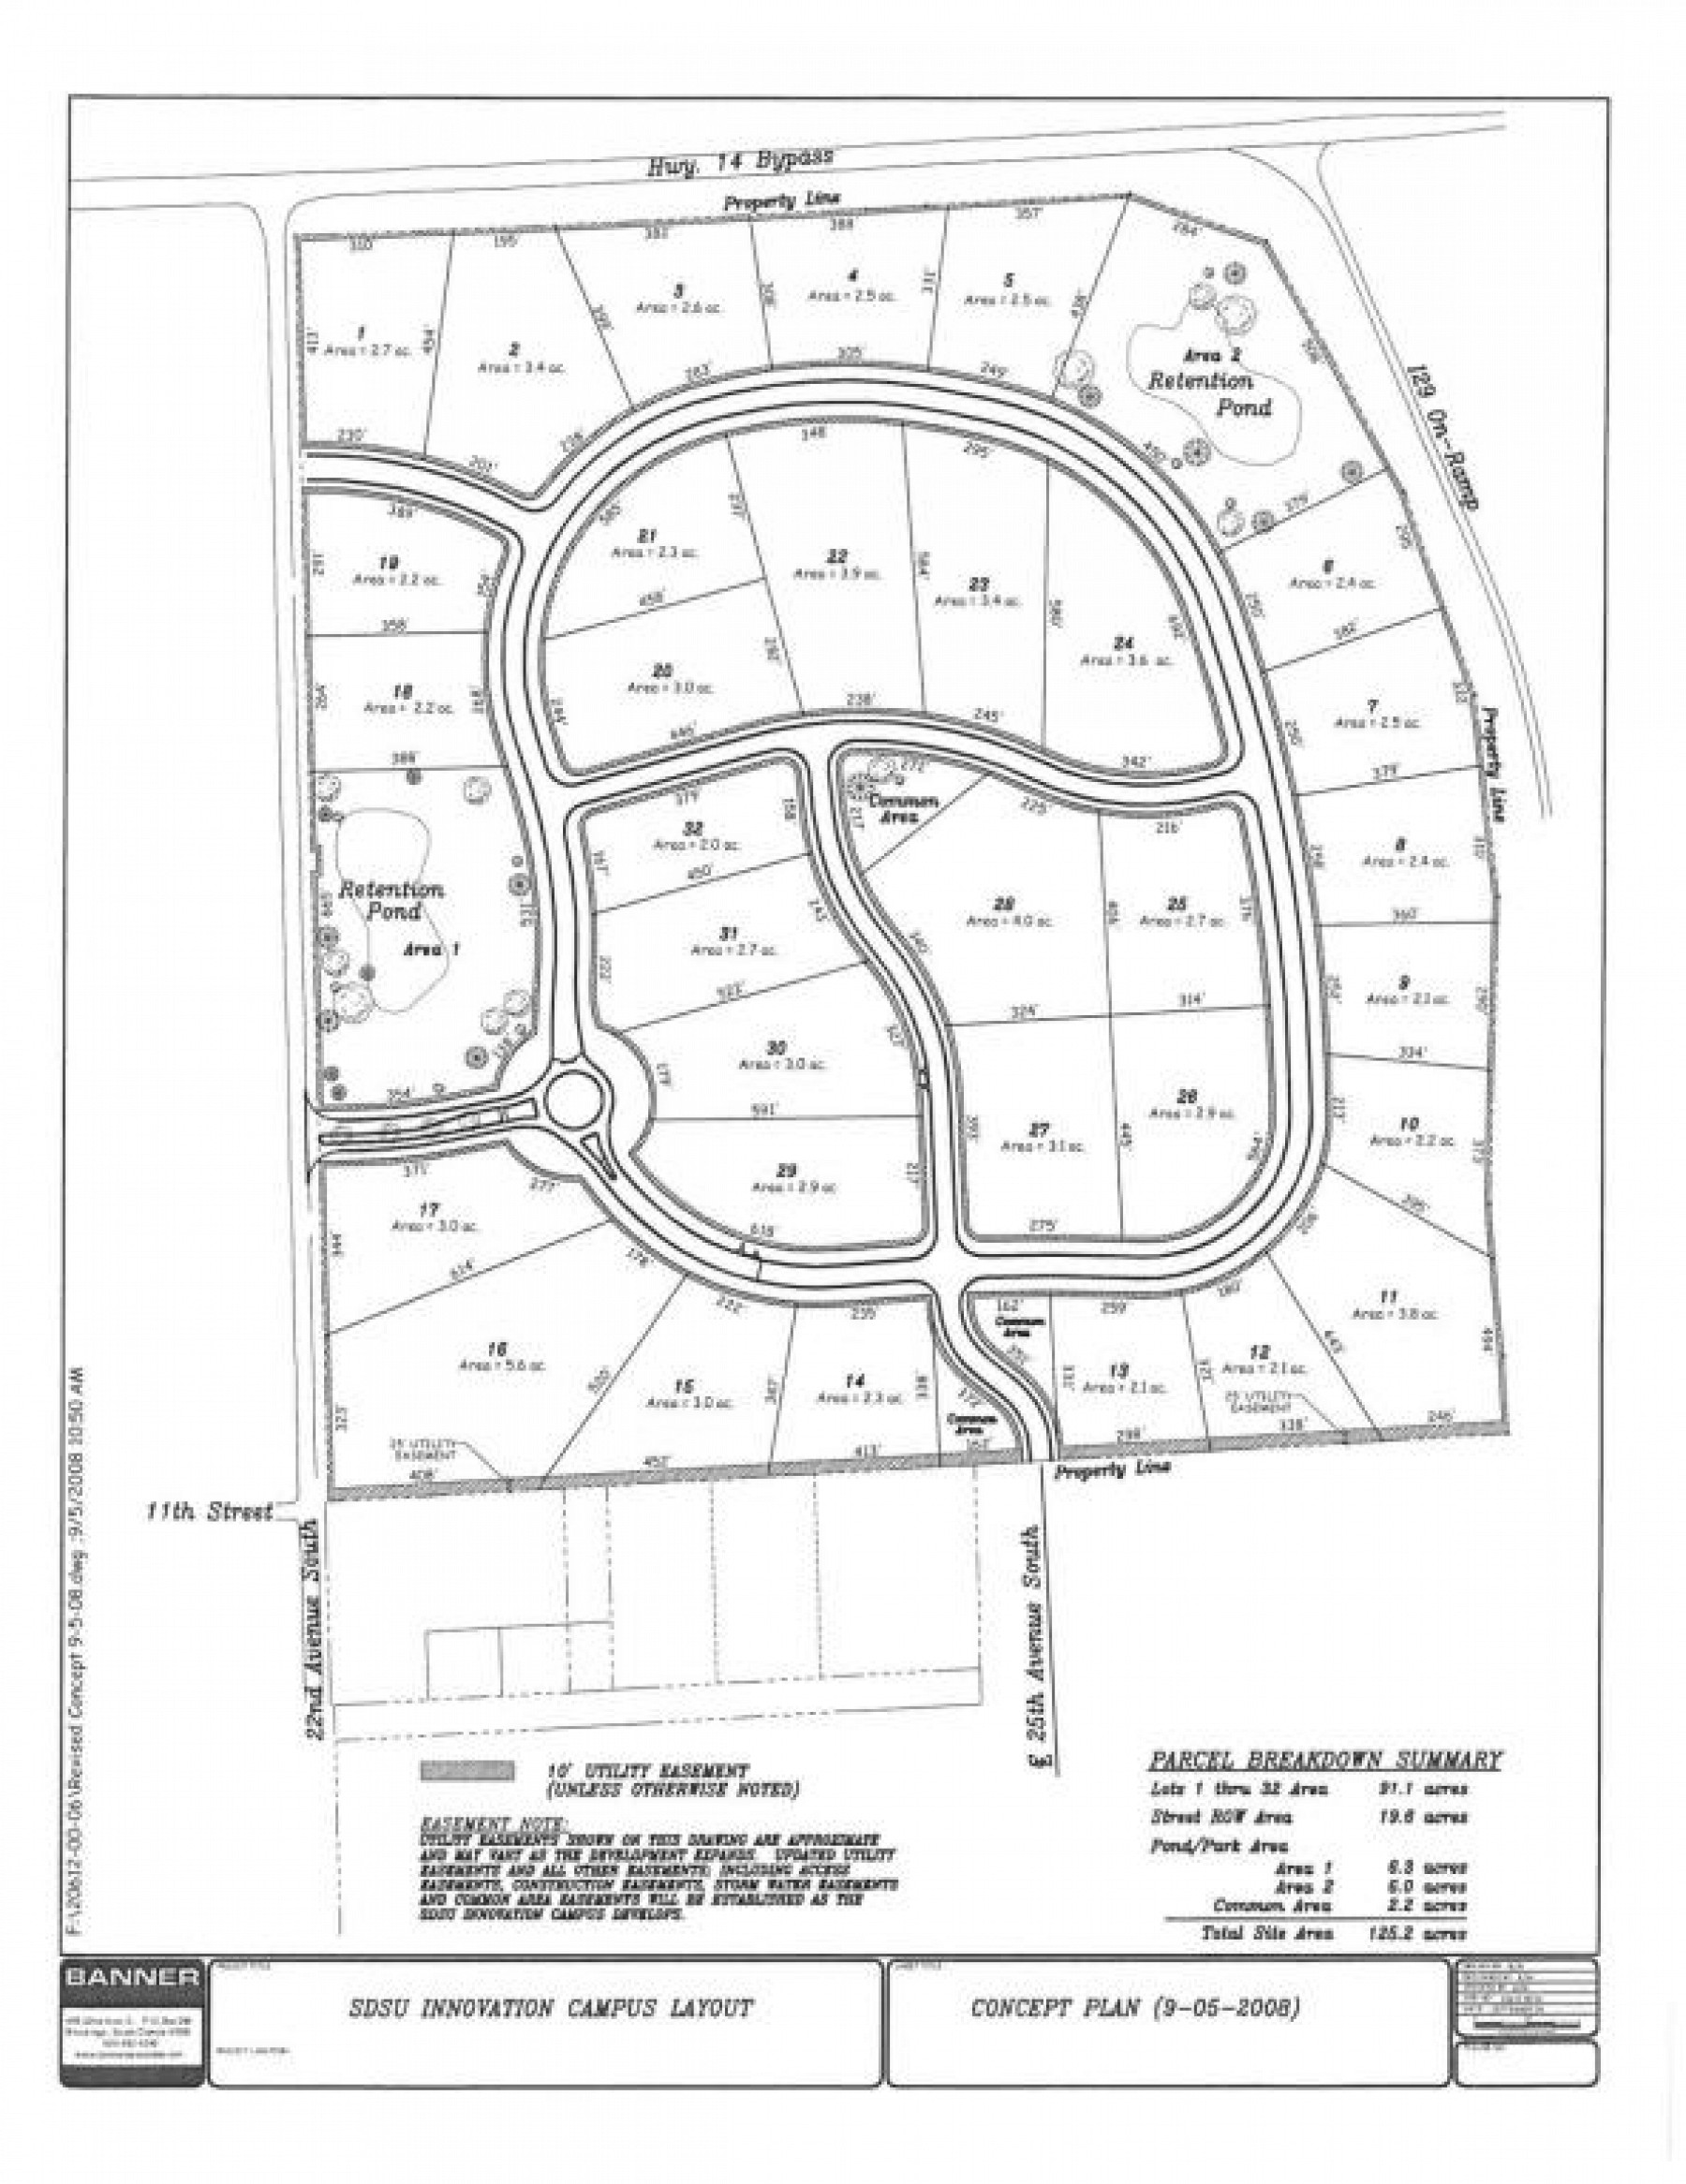 Lot 27 Innovation Campus, Brookings, SD 57006